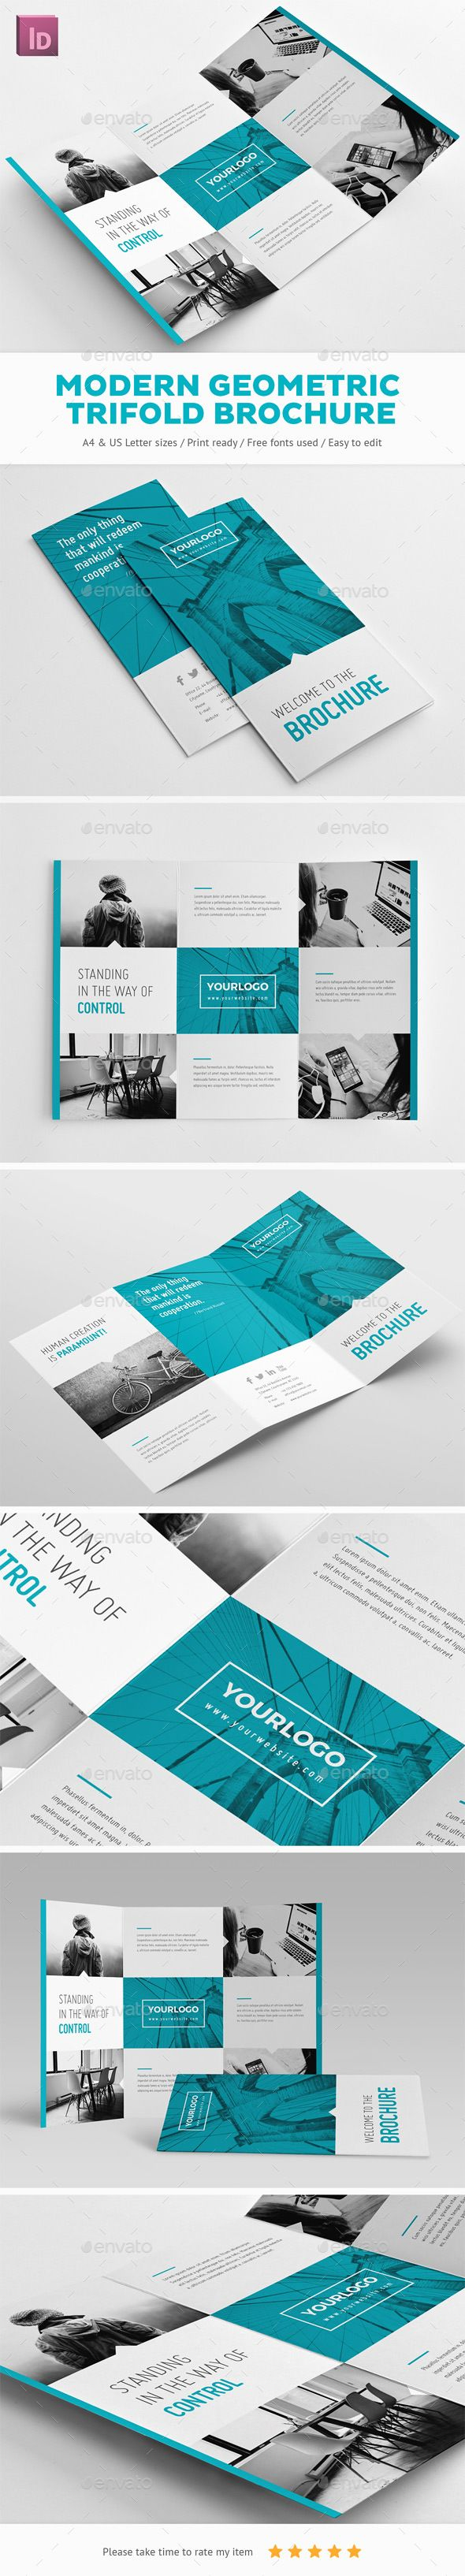 Modern Geometric Trifold Brochure Template InDesign INDD. Download here…